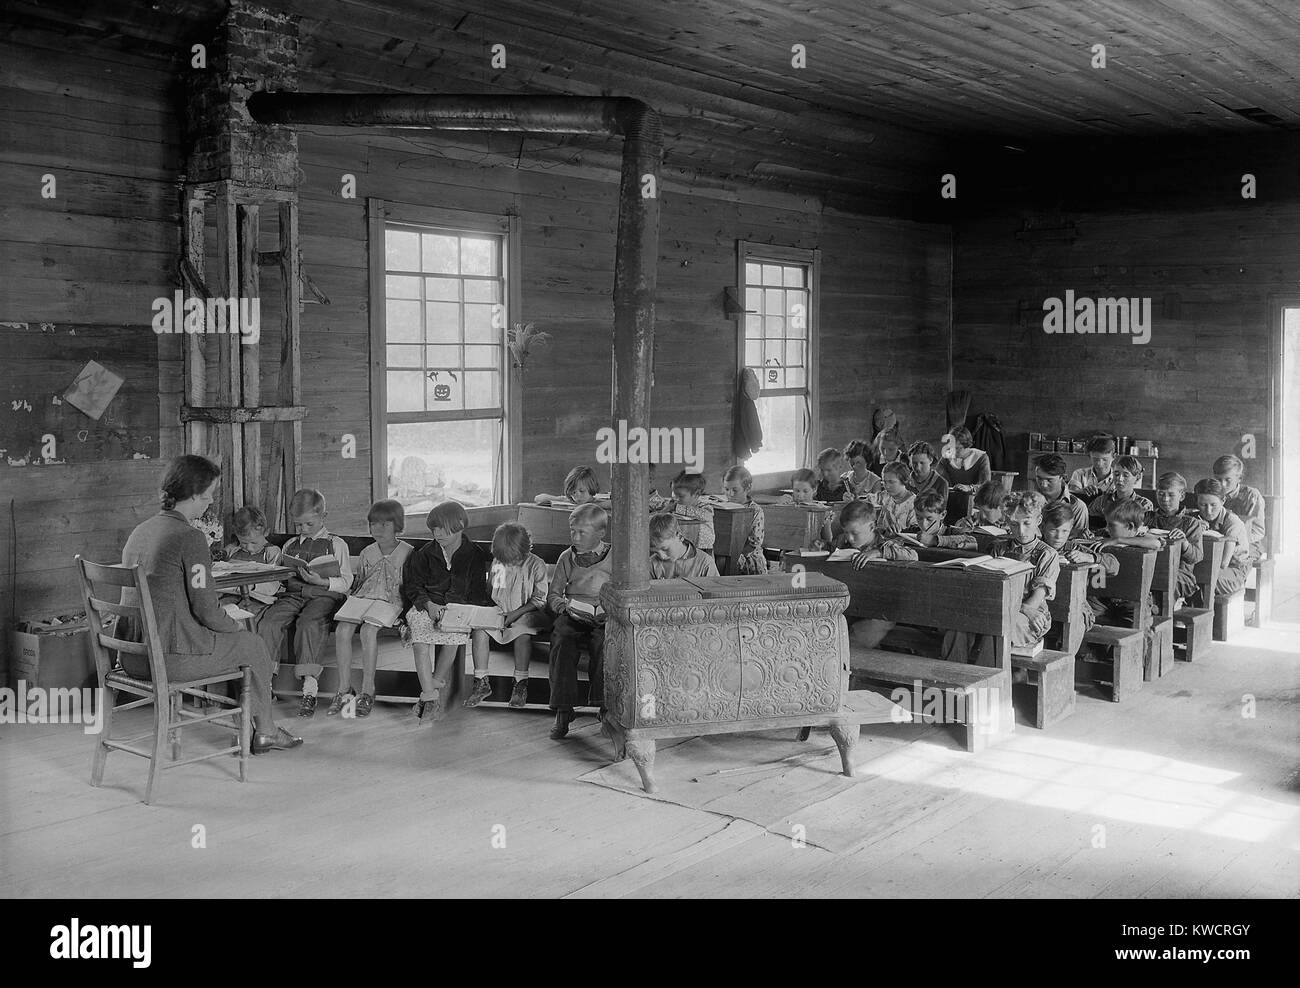 One room school with 28 students of various ages. Bare room lacks educational equipment and is heated by a wood - Stock Image